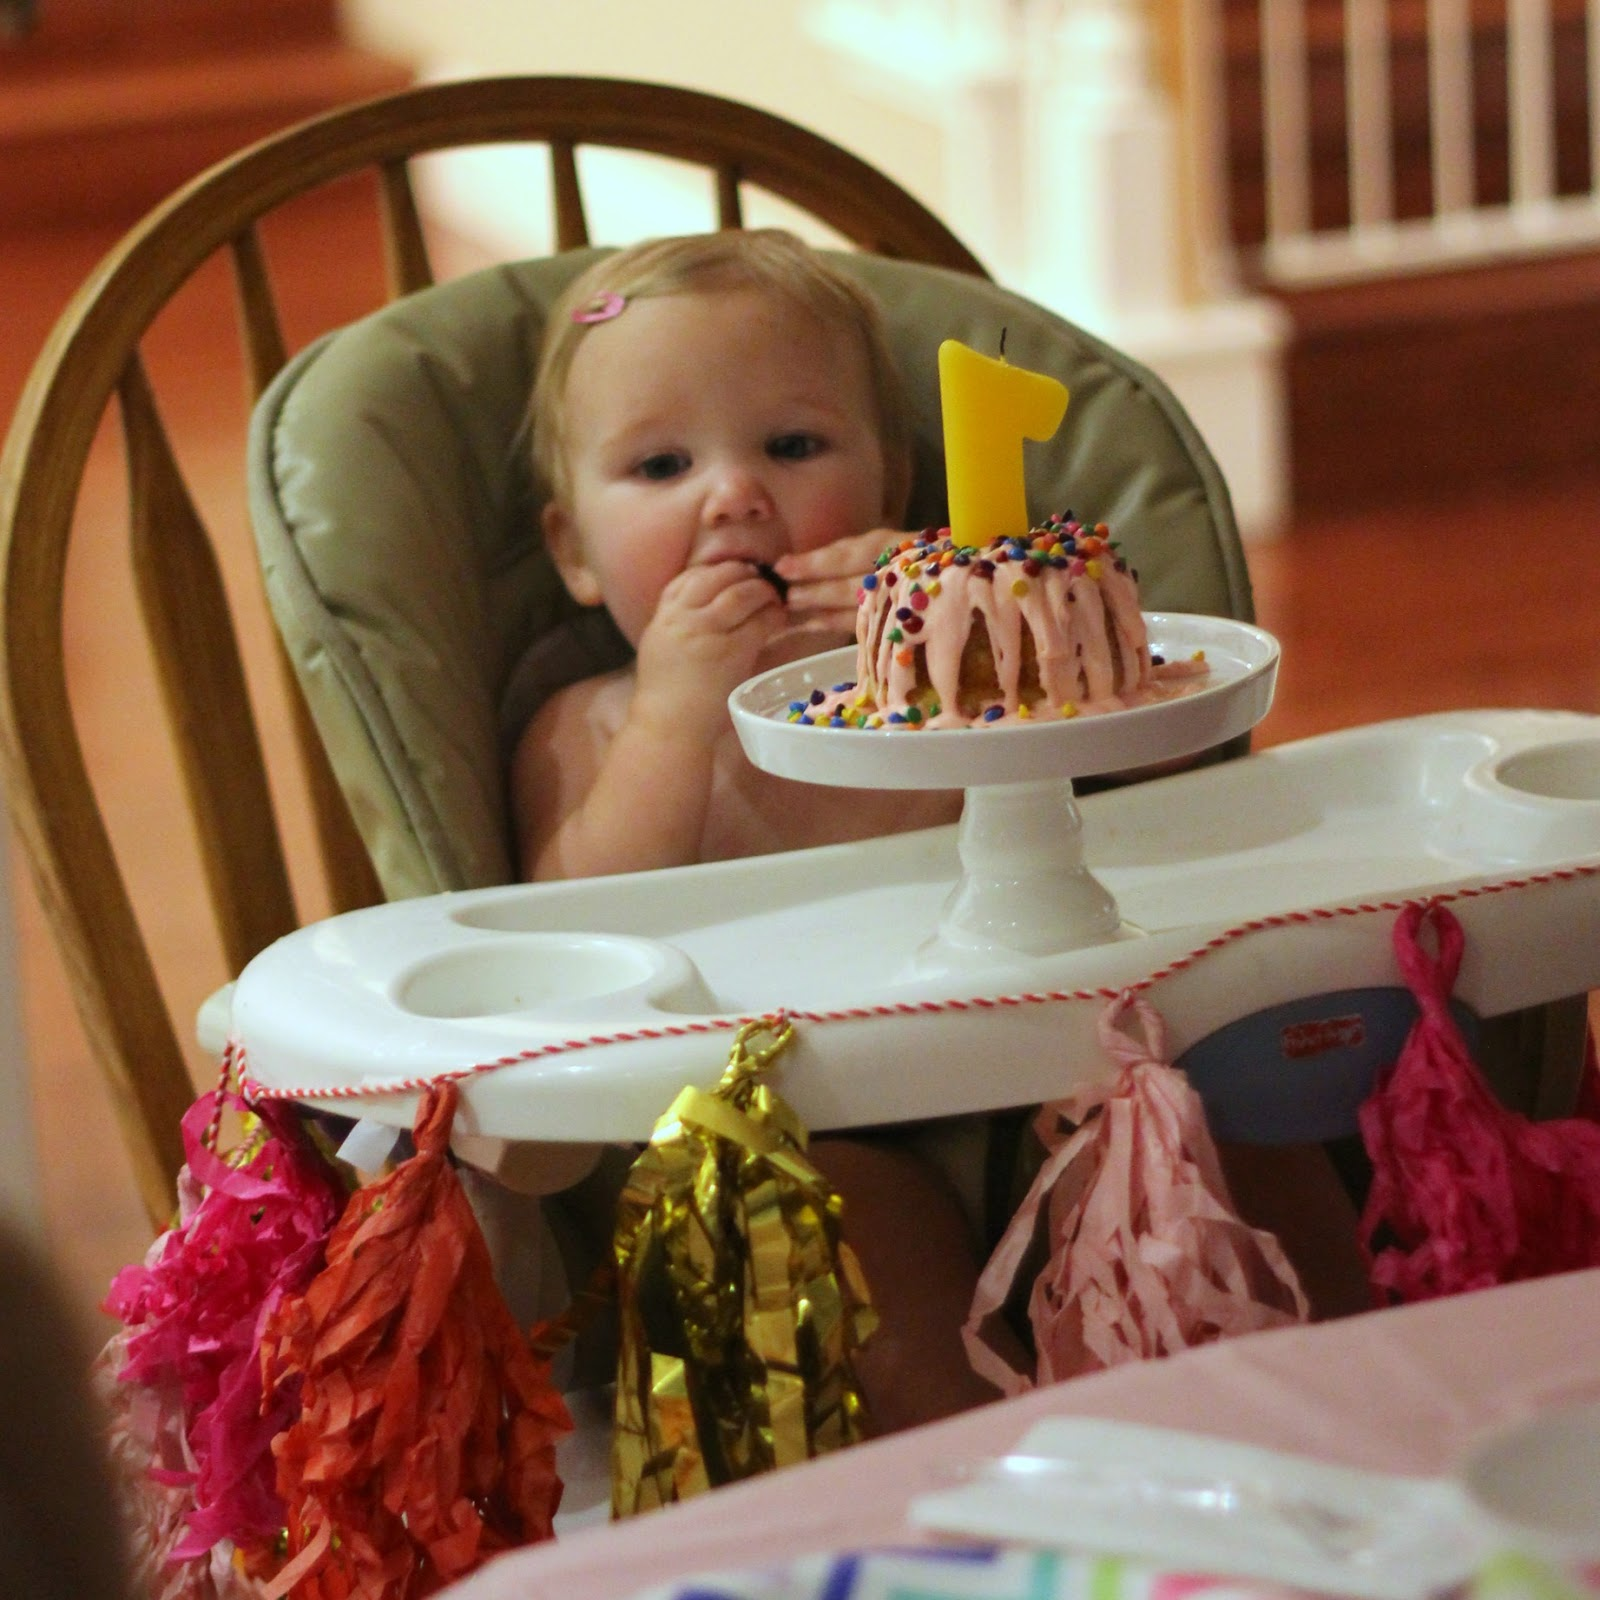 Daphne Made Her Own Birthday Cake Too: Toddler Approved!: My Favorite Tips To Throw The Perfect